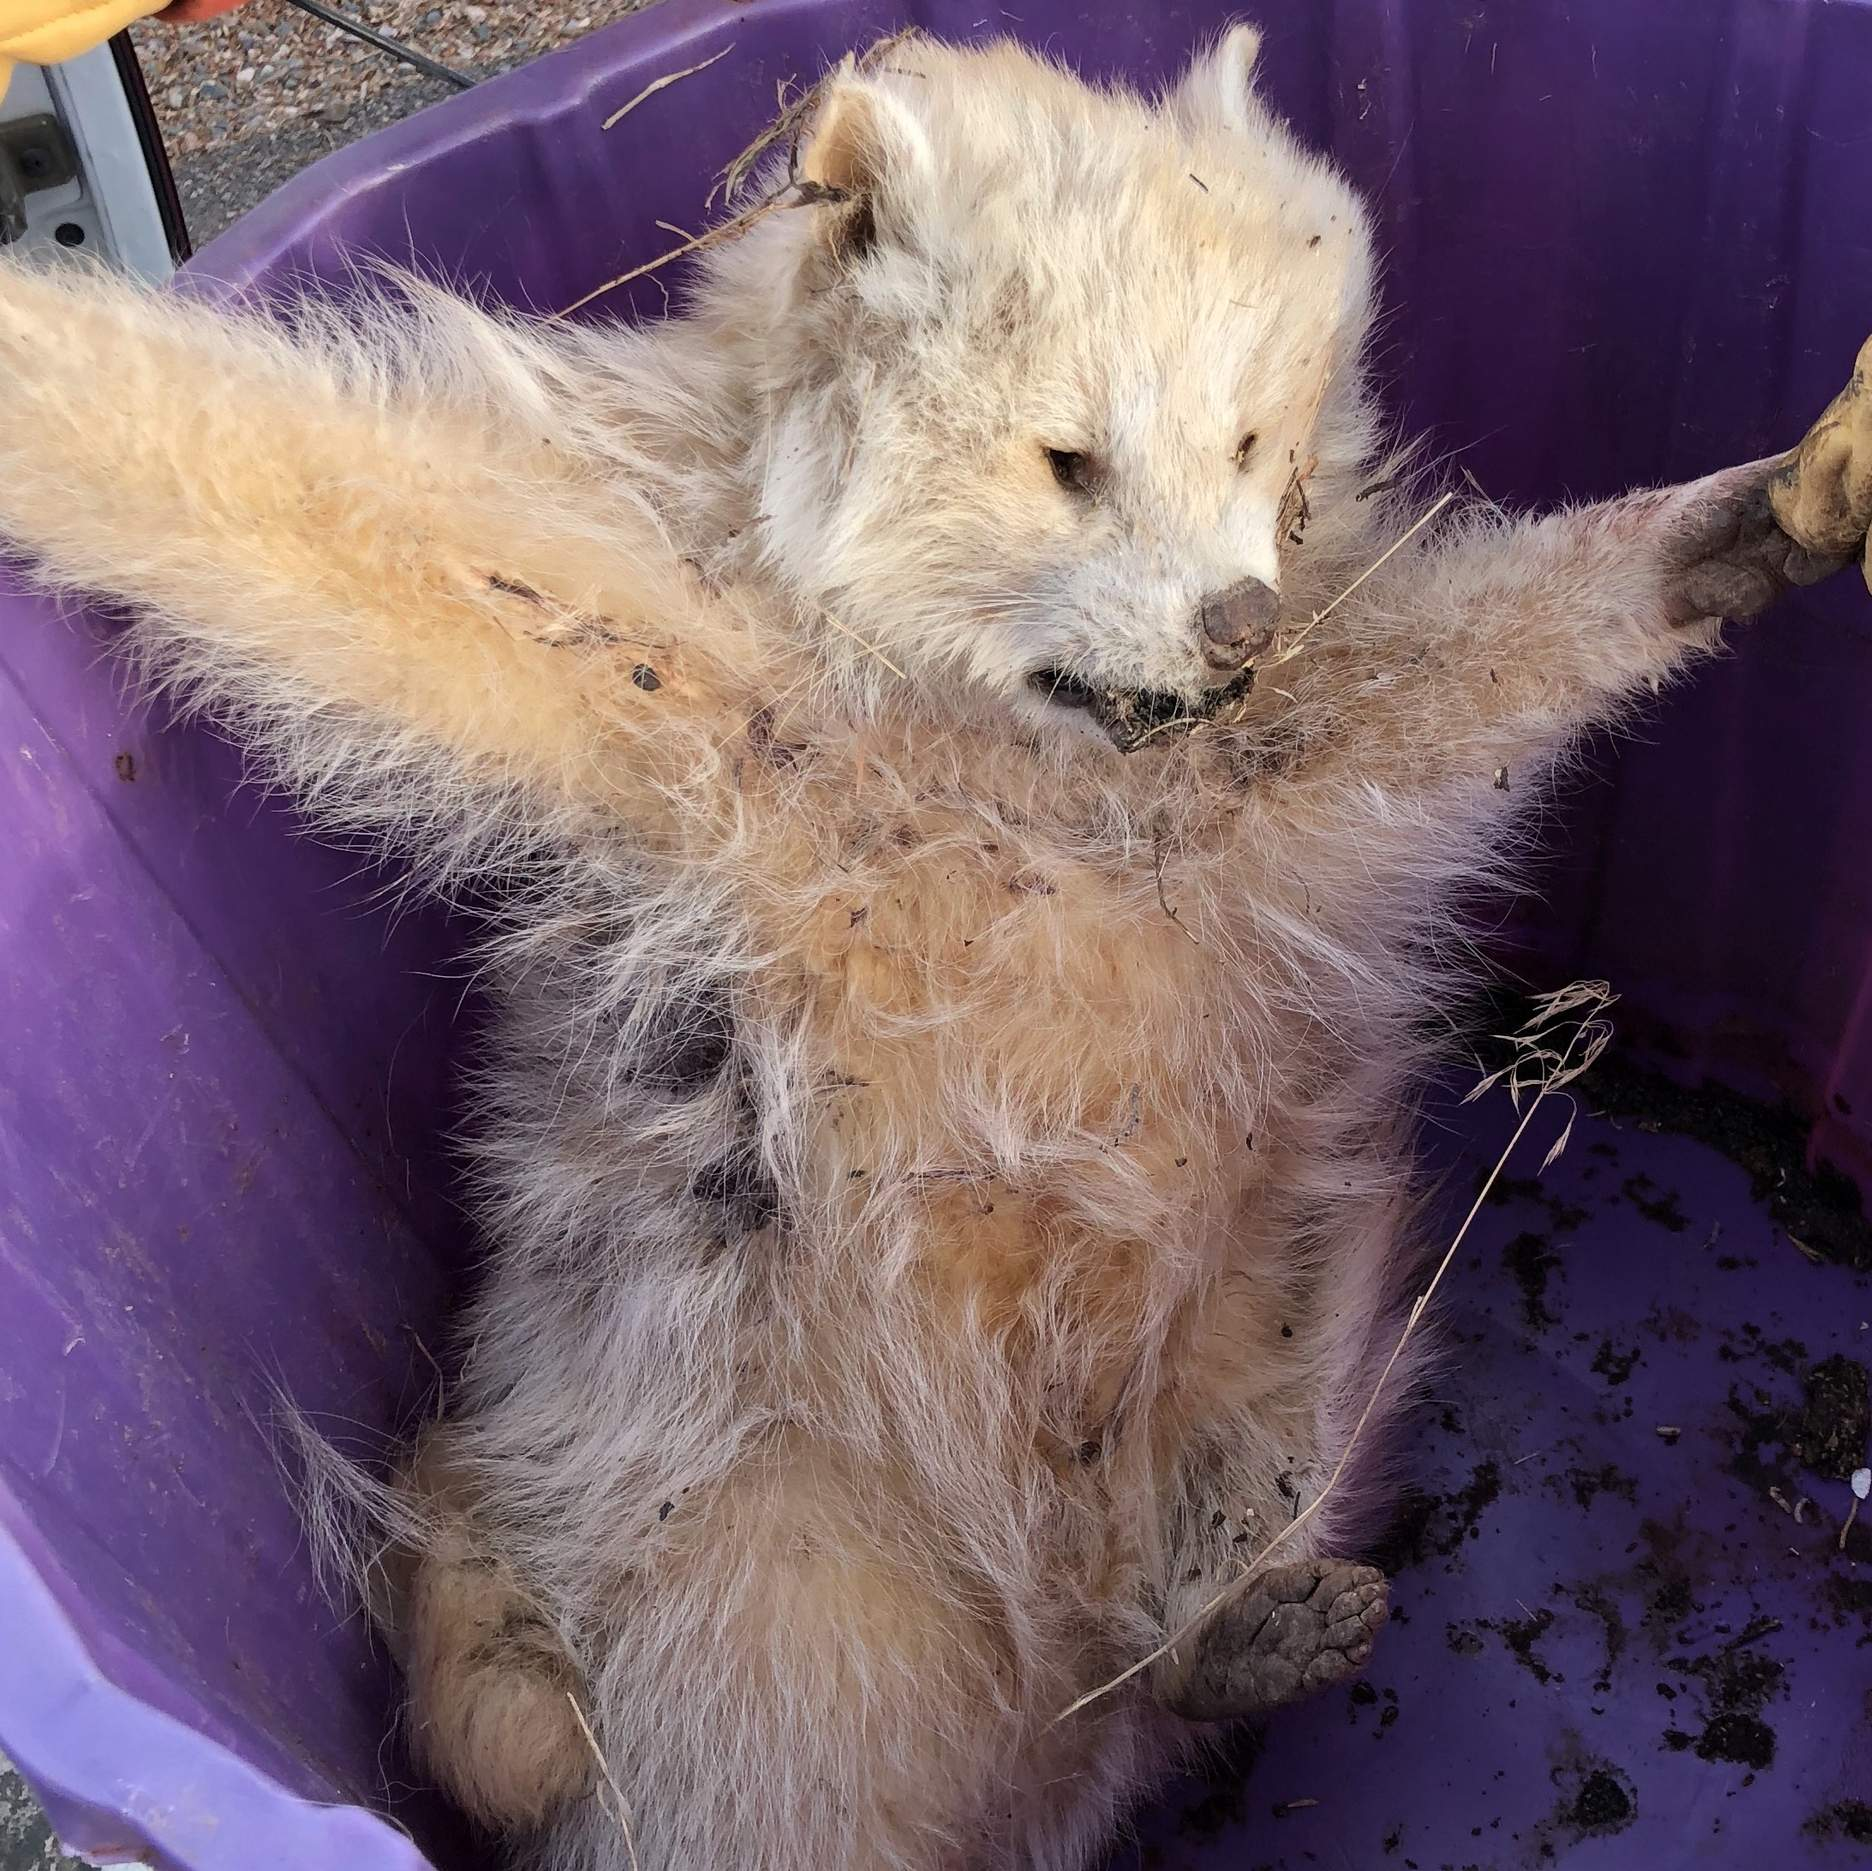 Durango family finds rare animal: An albino raccoon